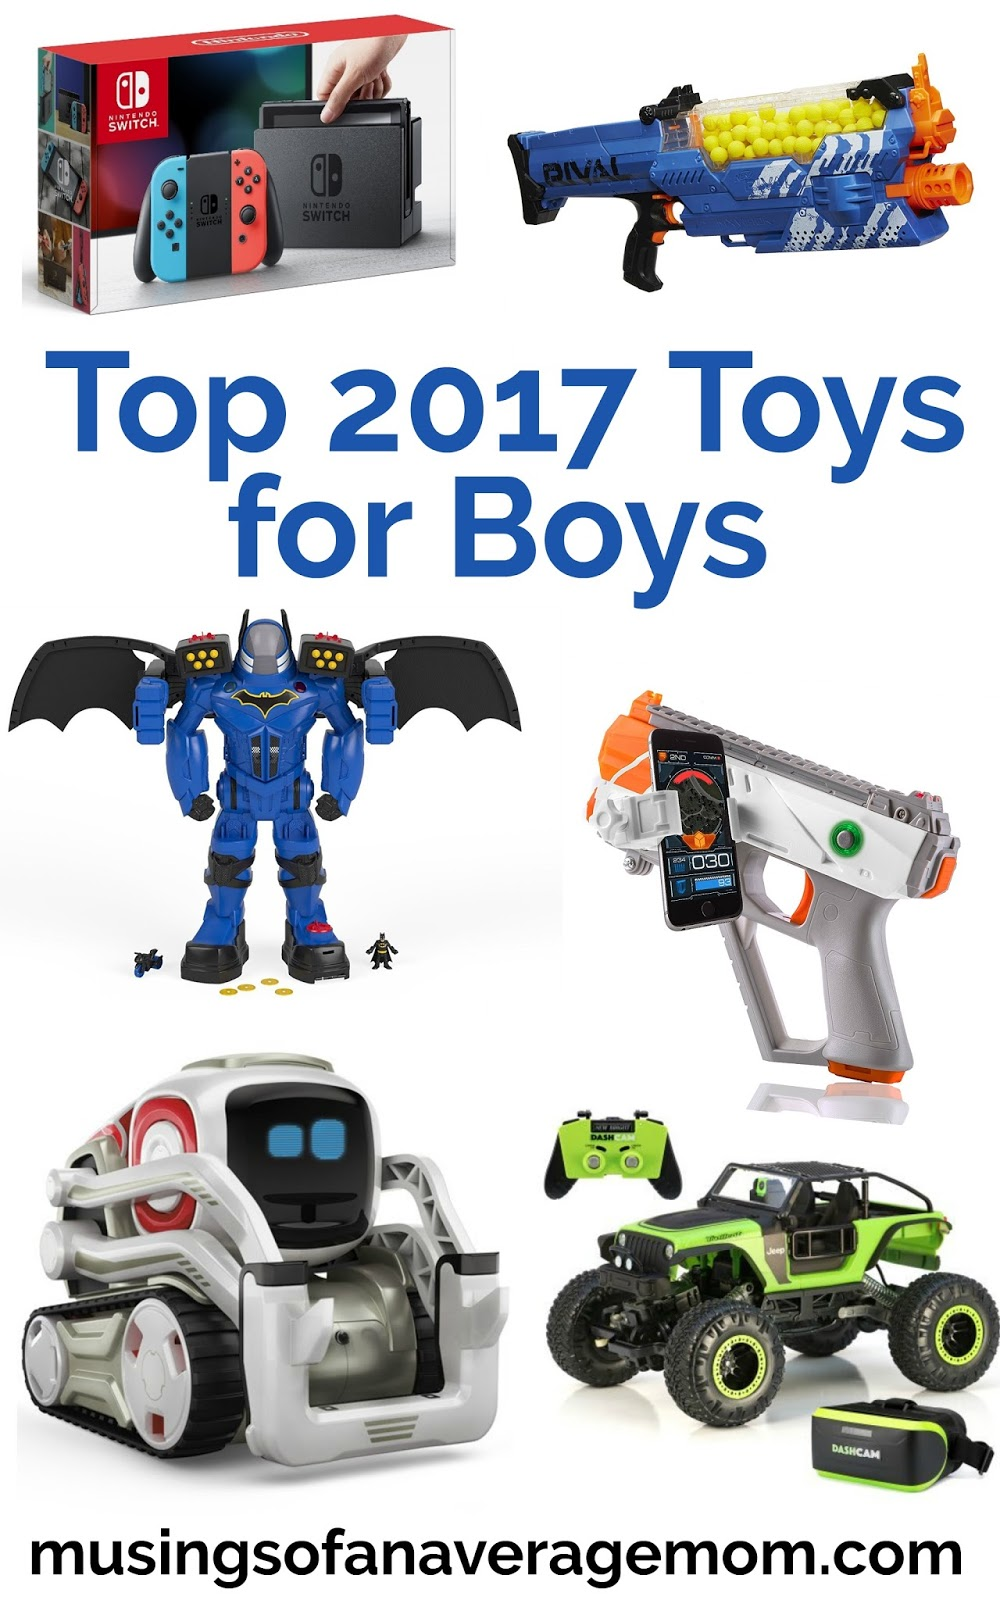 Top Toys For Boys : Musings of an average mom top toys for boys